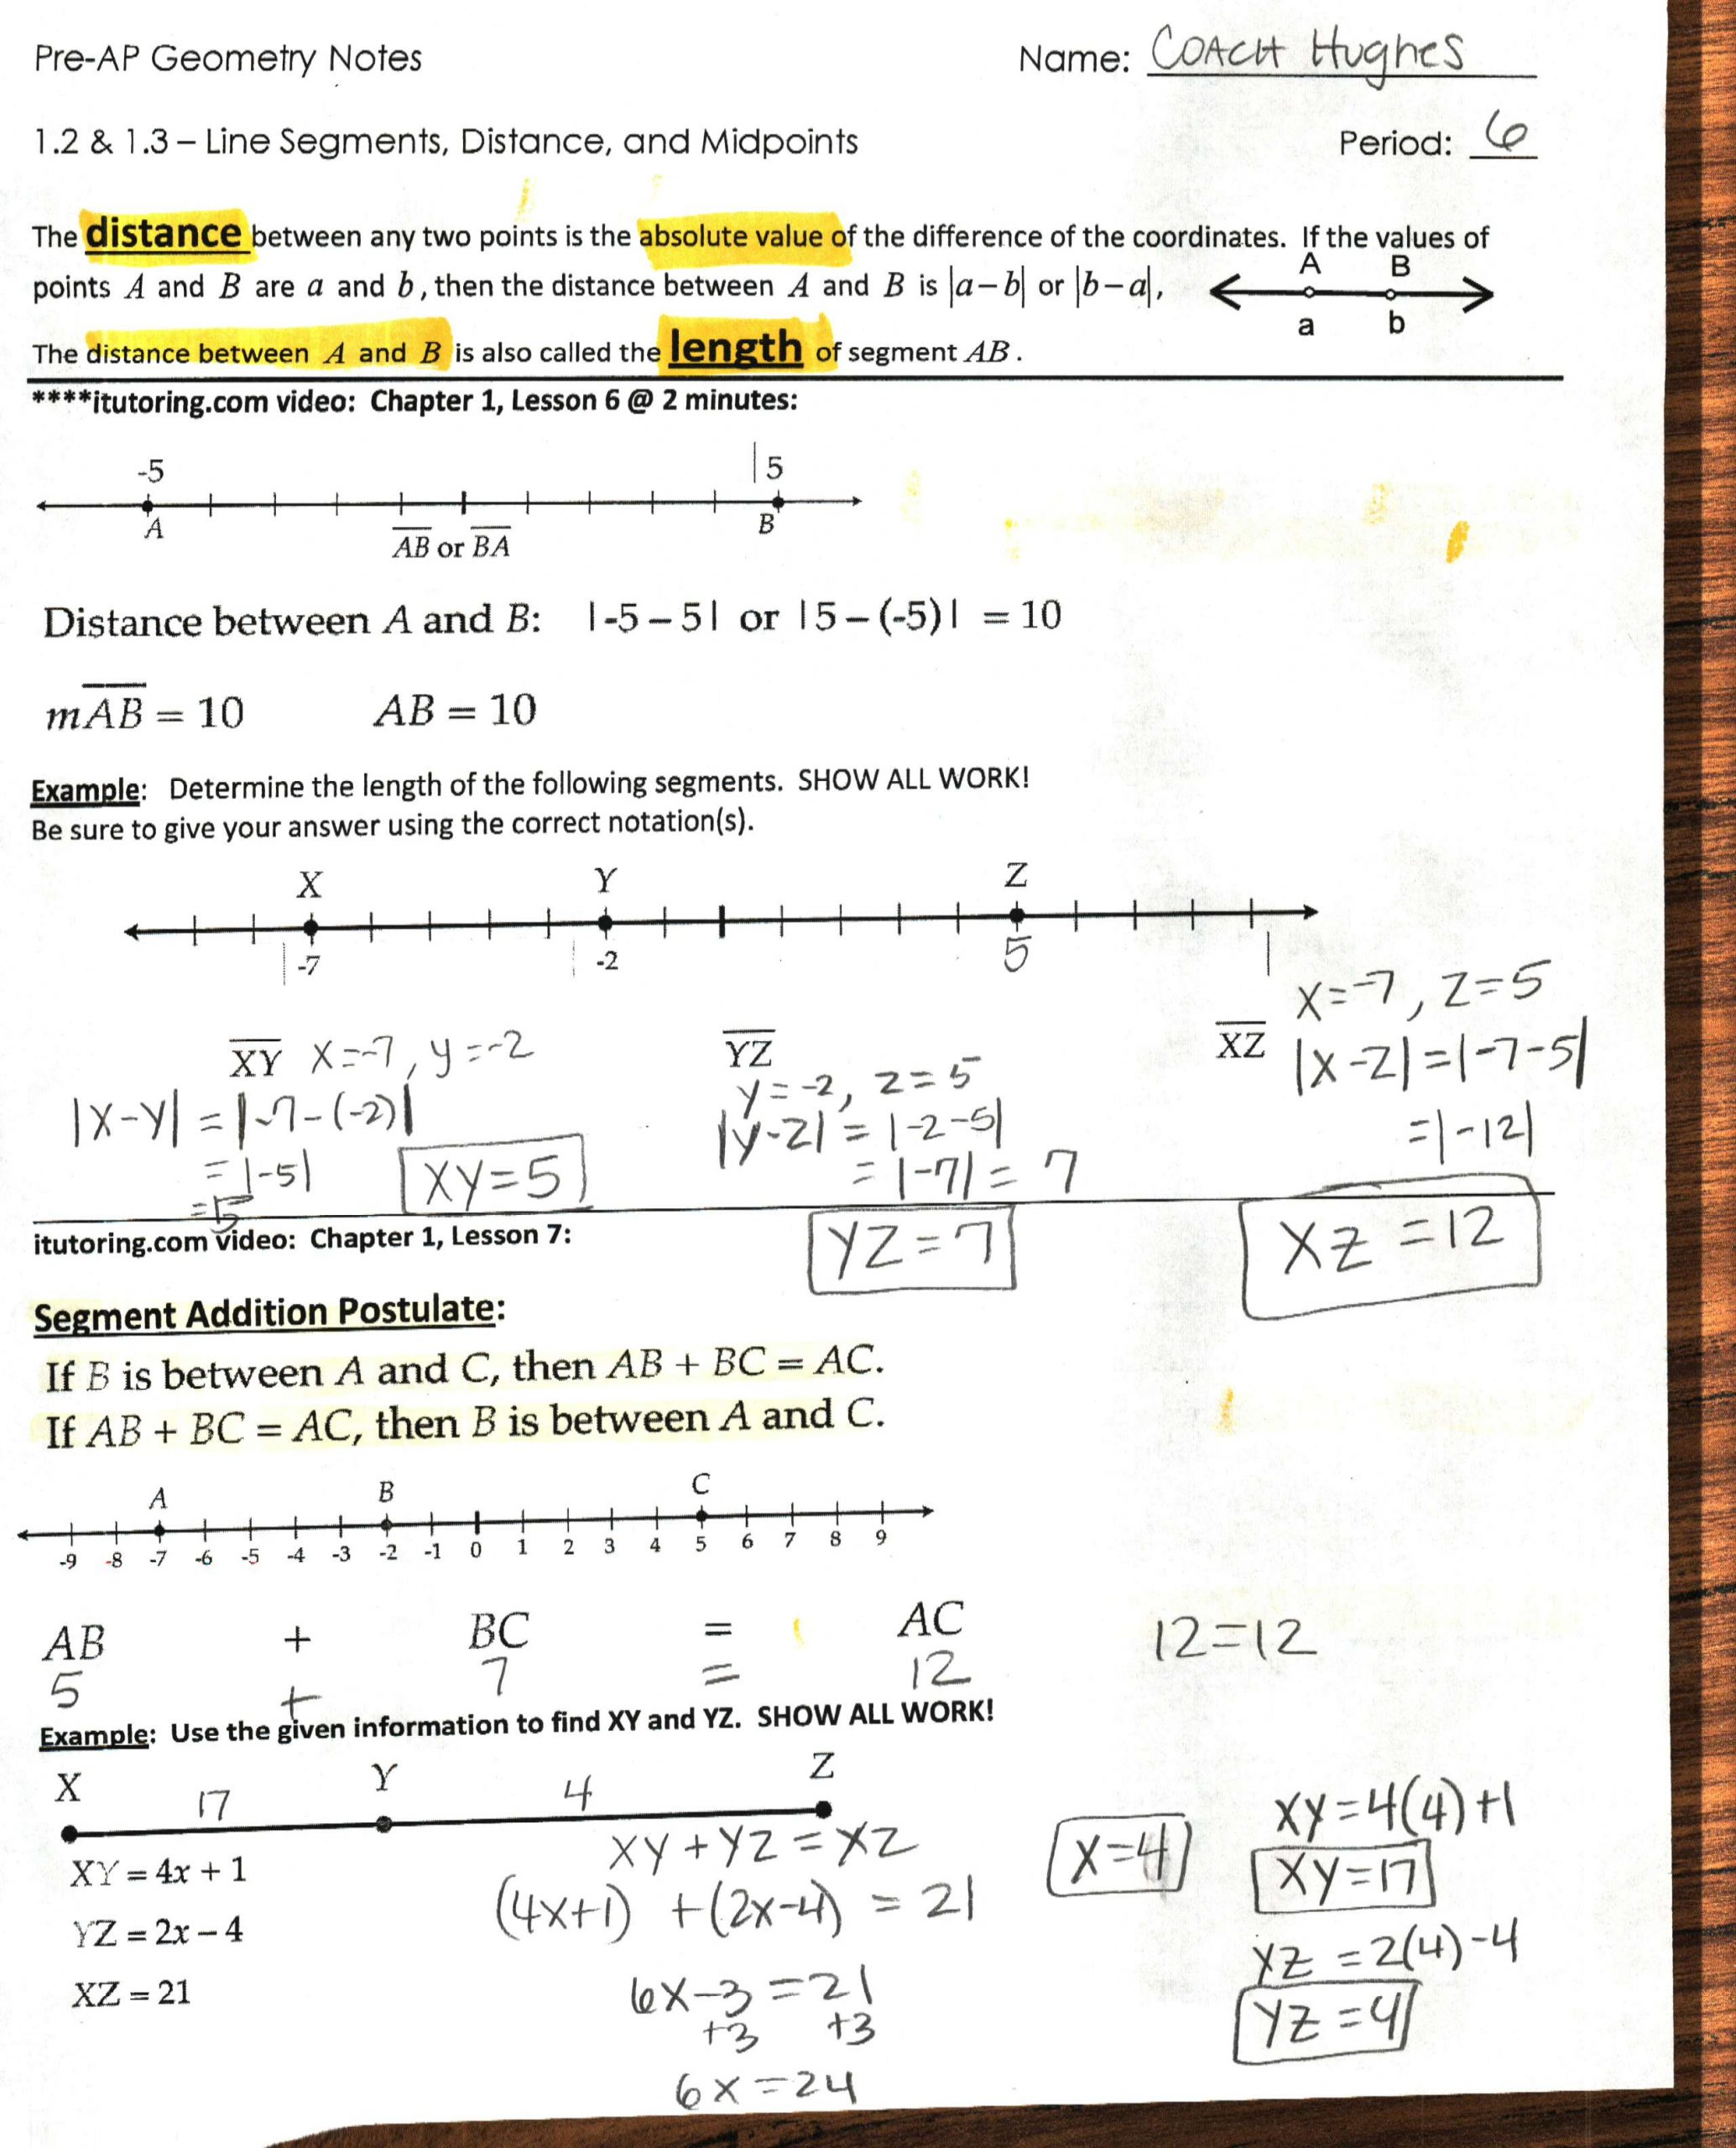 Midpoint and Distance Worksheet 1st Six Weeks Coach Hughes Website